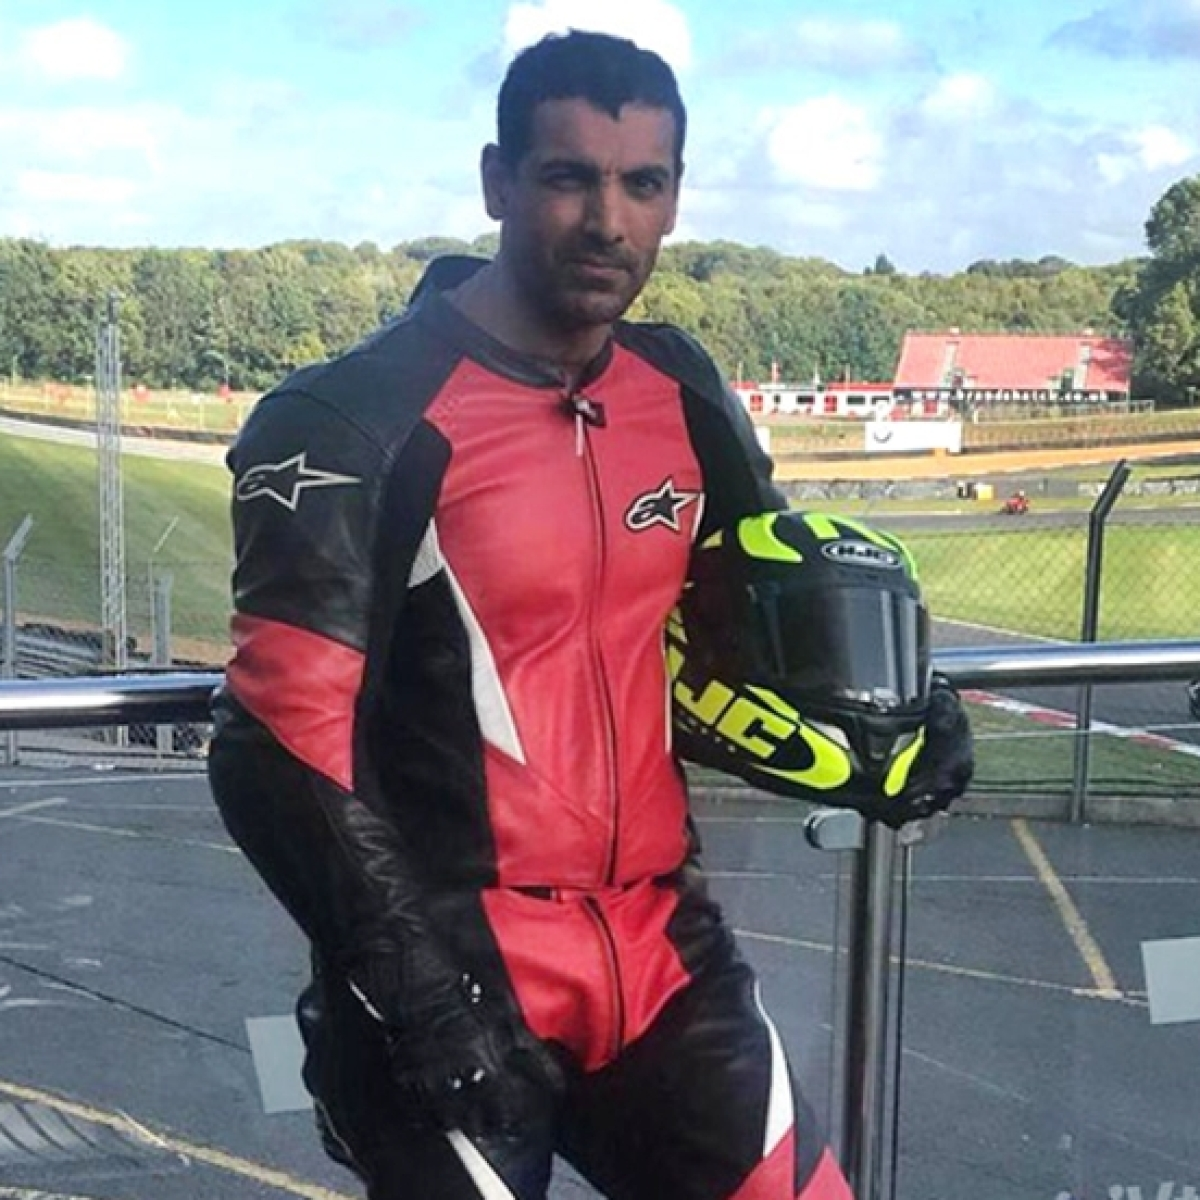 John Abraham introduces his 'super bikes' that cost more than Rs 1 crore!